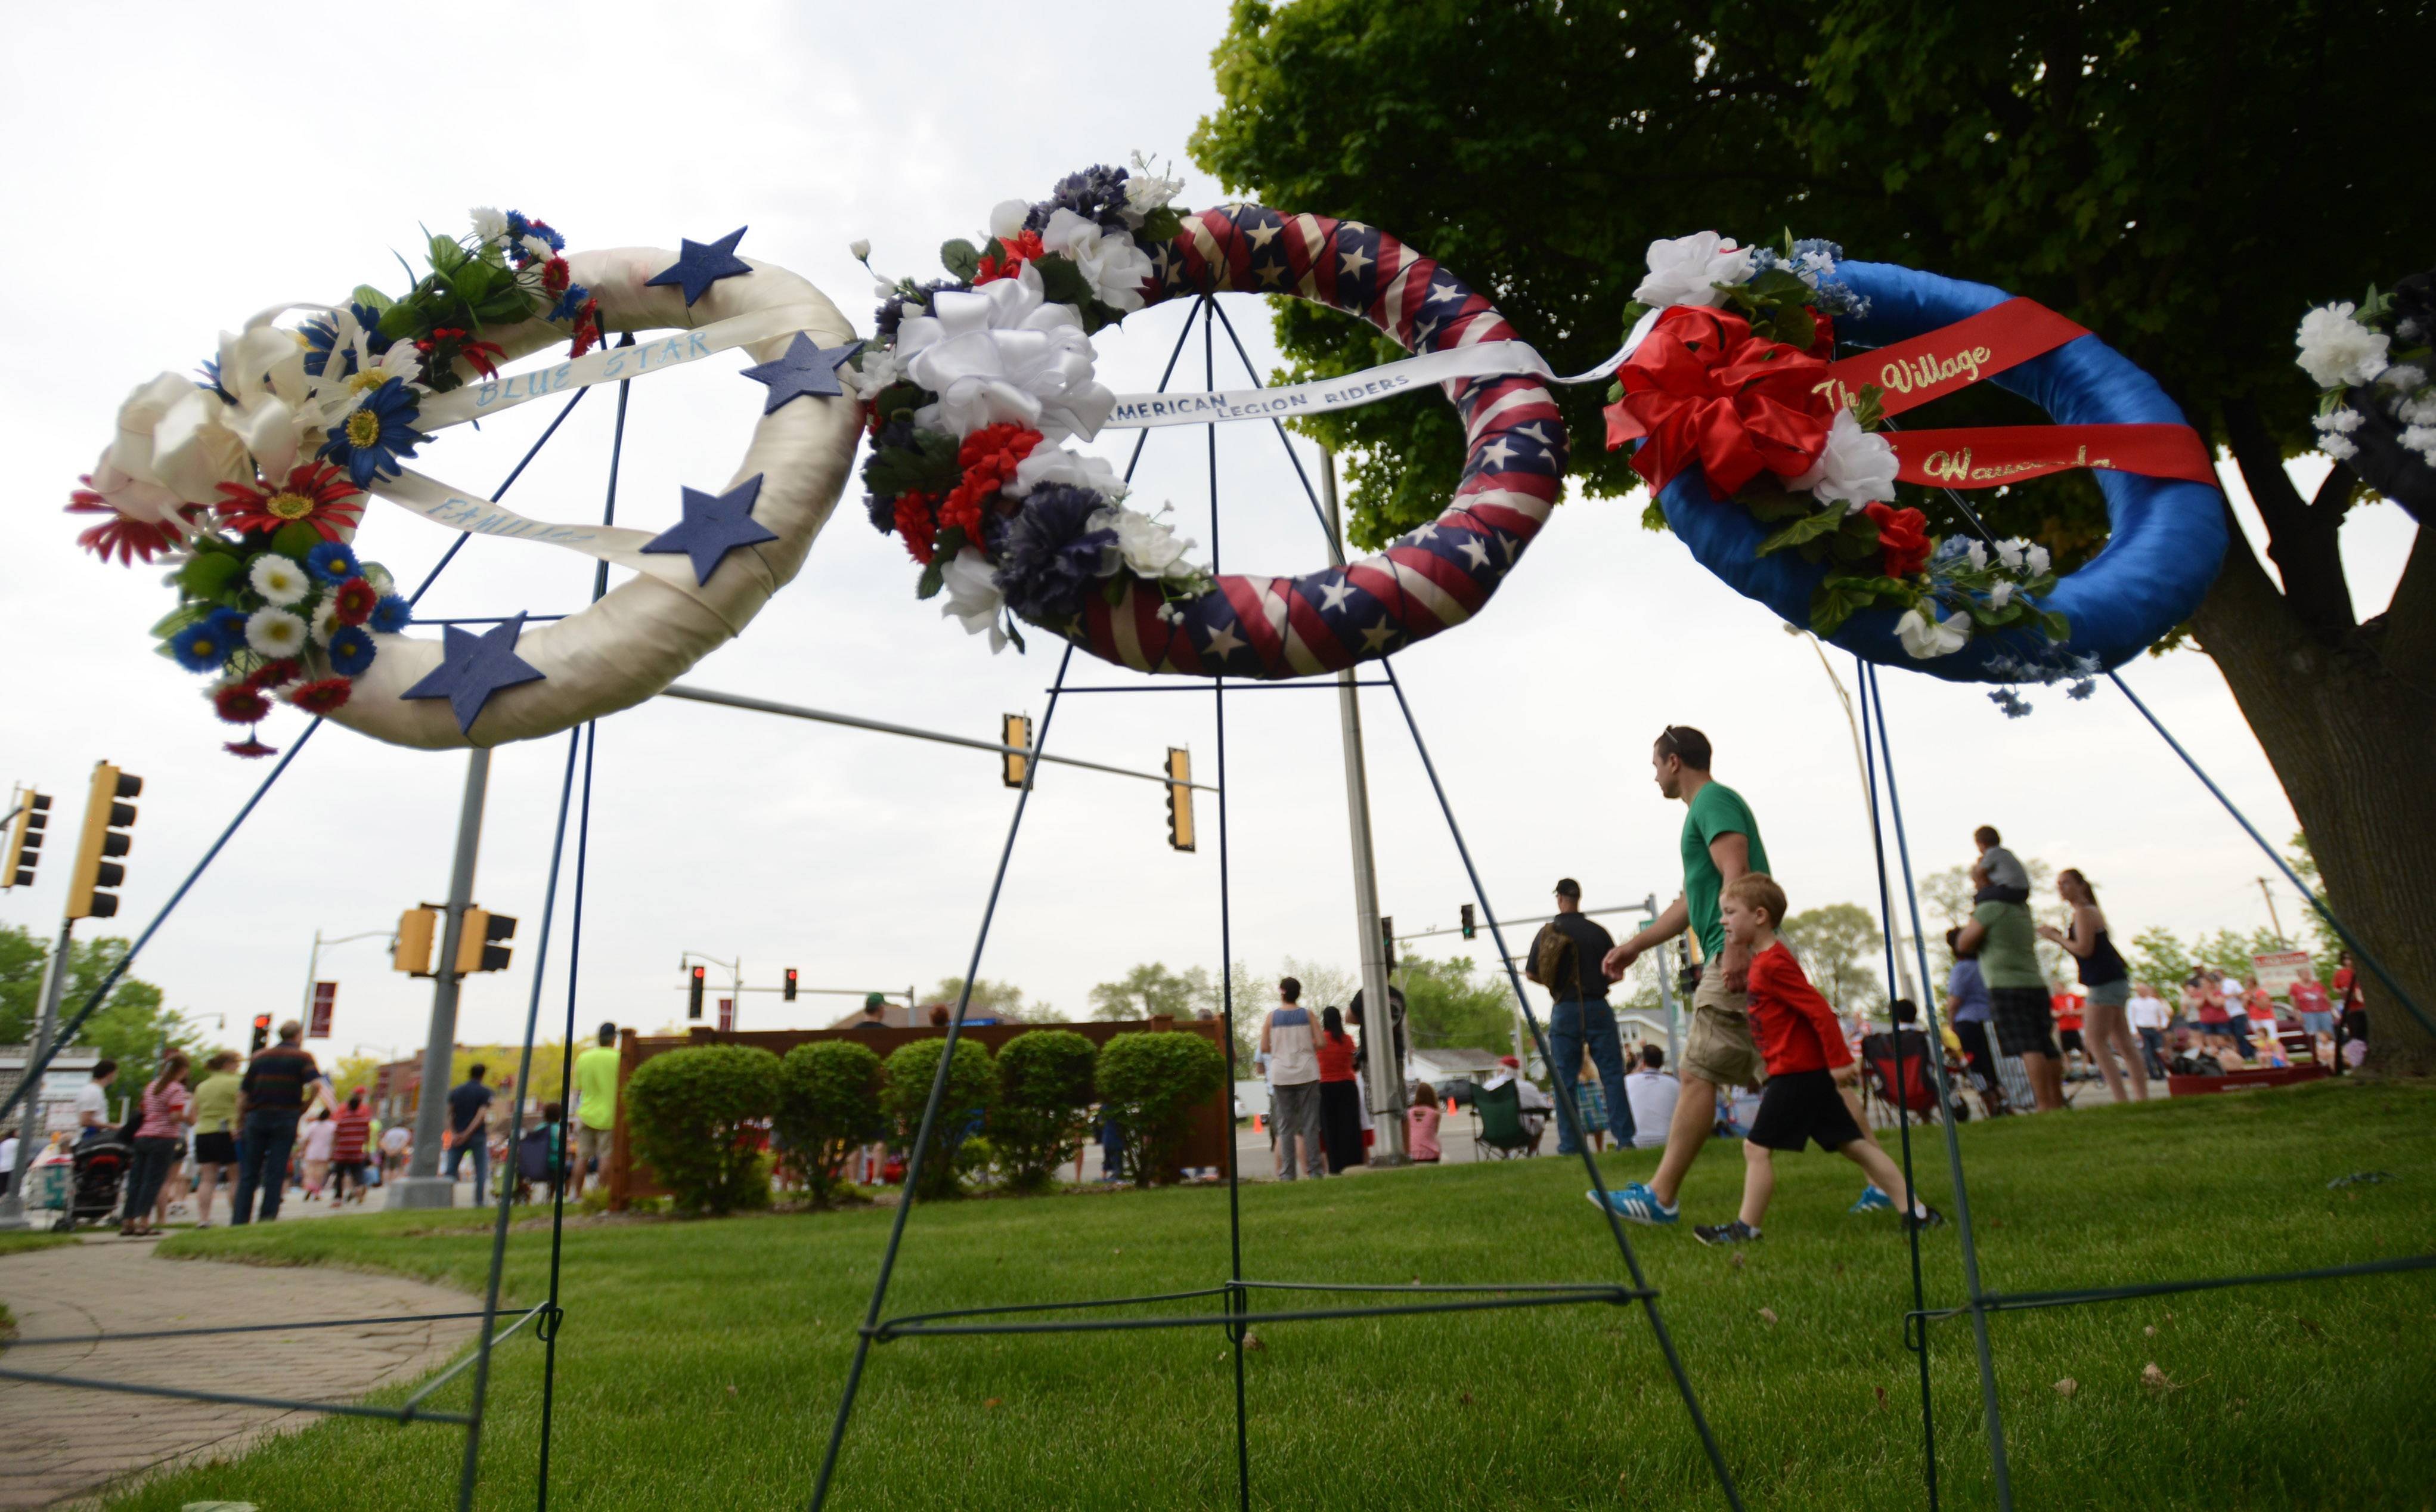 Wreaths are placed at Memorial Park on Route 176 and Main Street in Wauconda during the village's Memorial Day parade and ceremony on Monday.